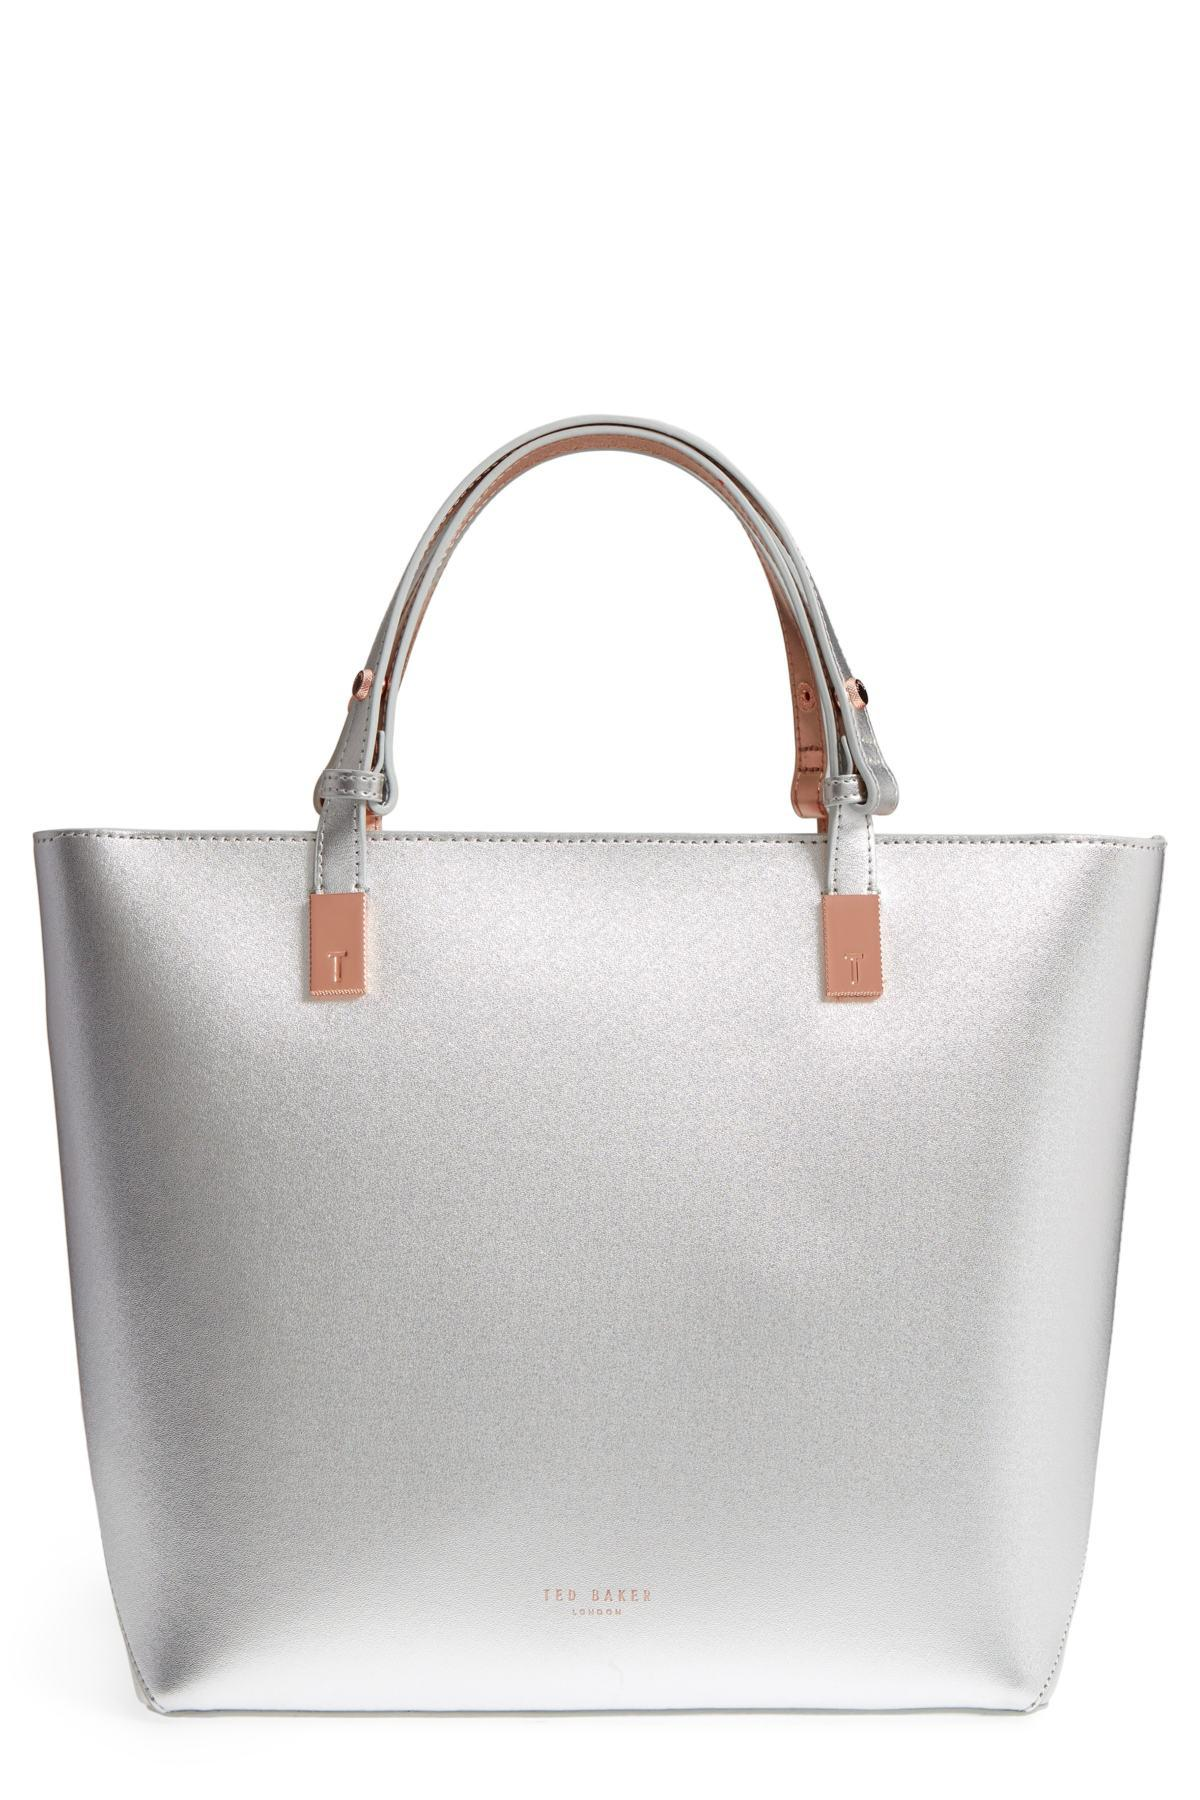 e48e59ade869 Ted Baker - Metallic Adjustable Handle Leather Tote - Lyst. View fullscreen